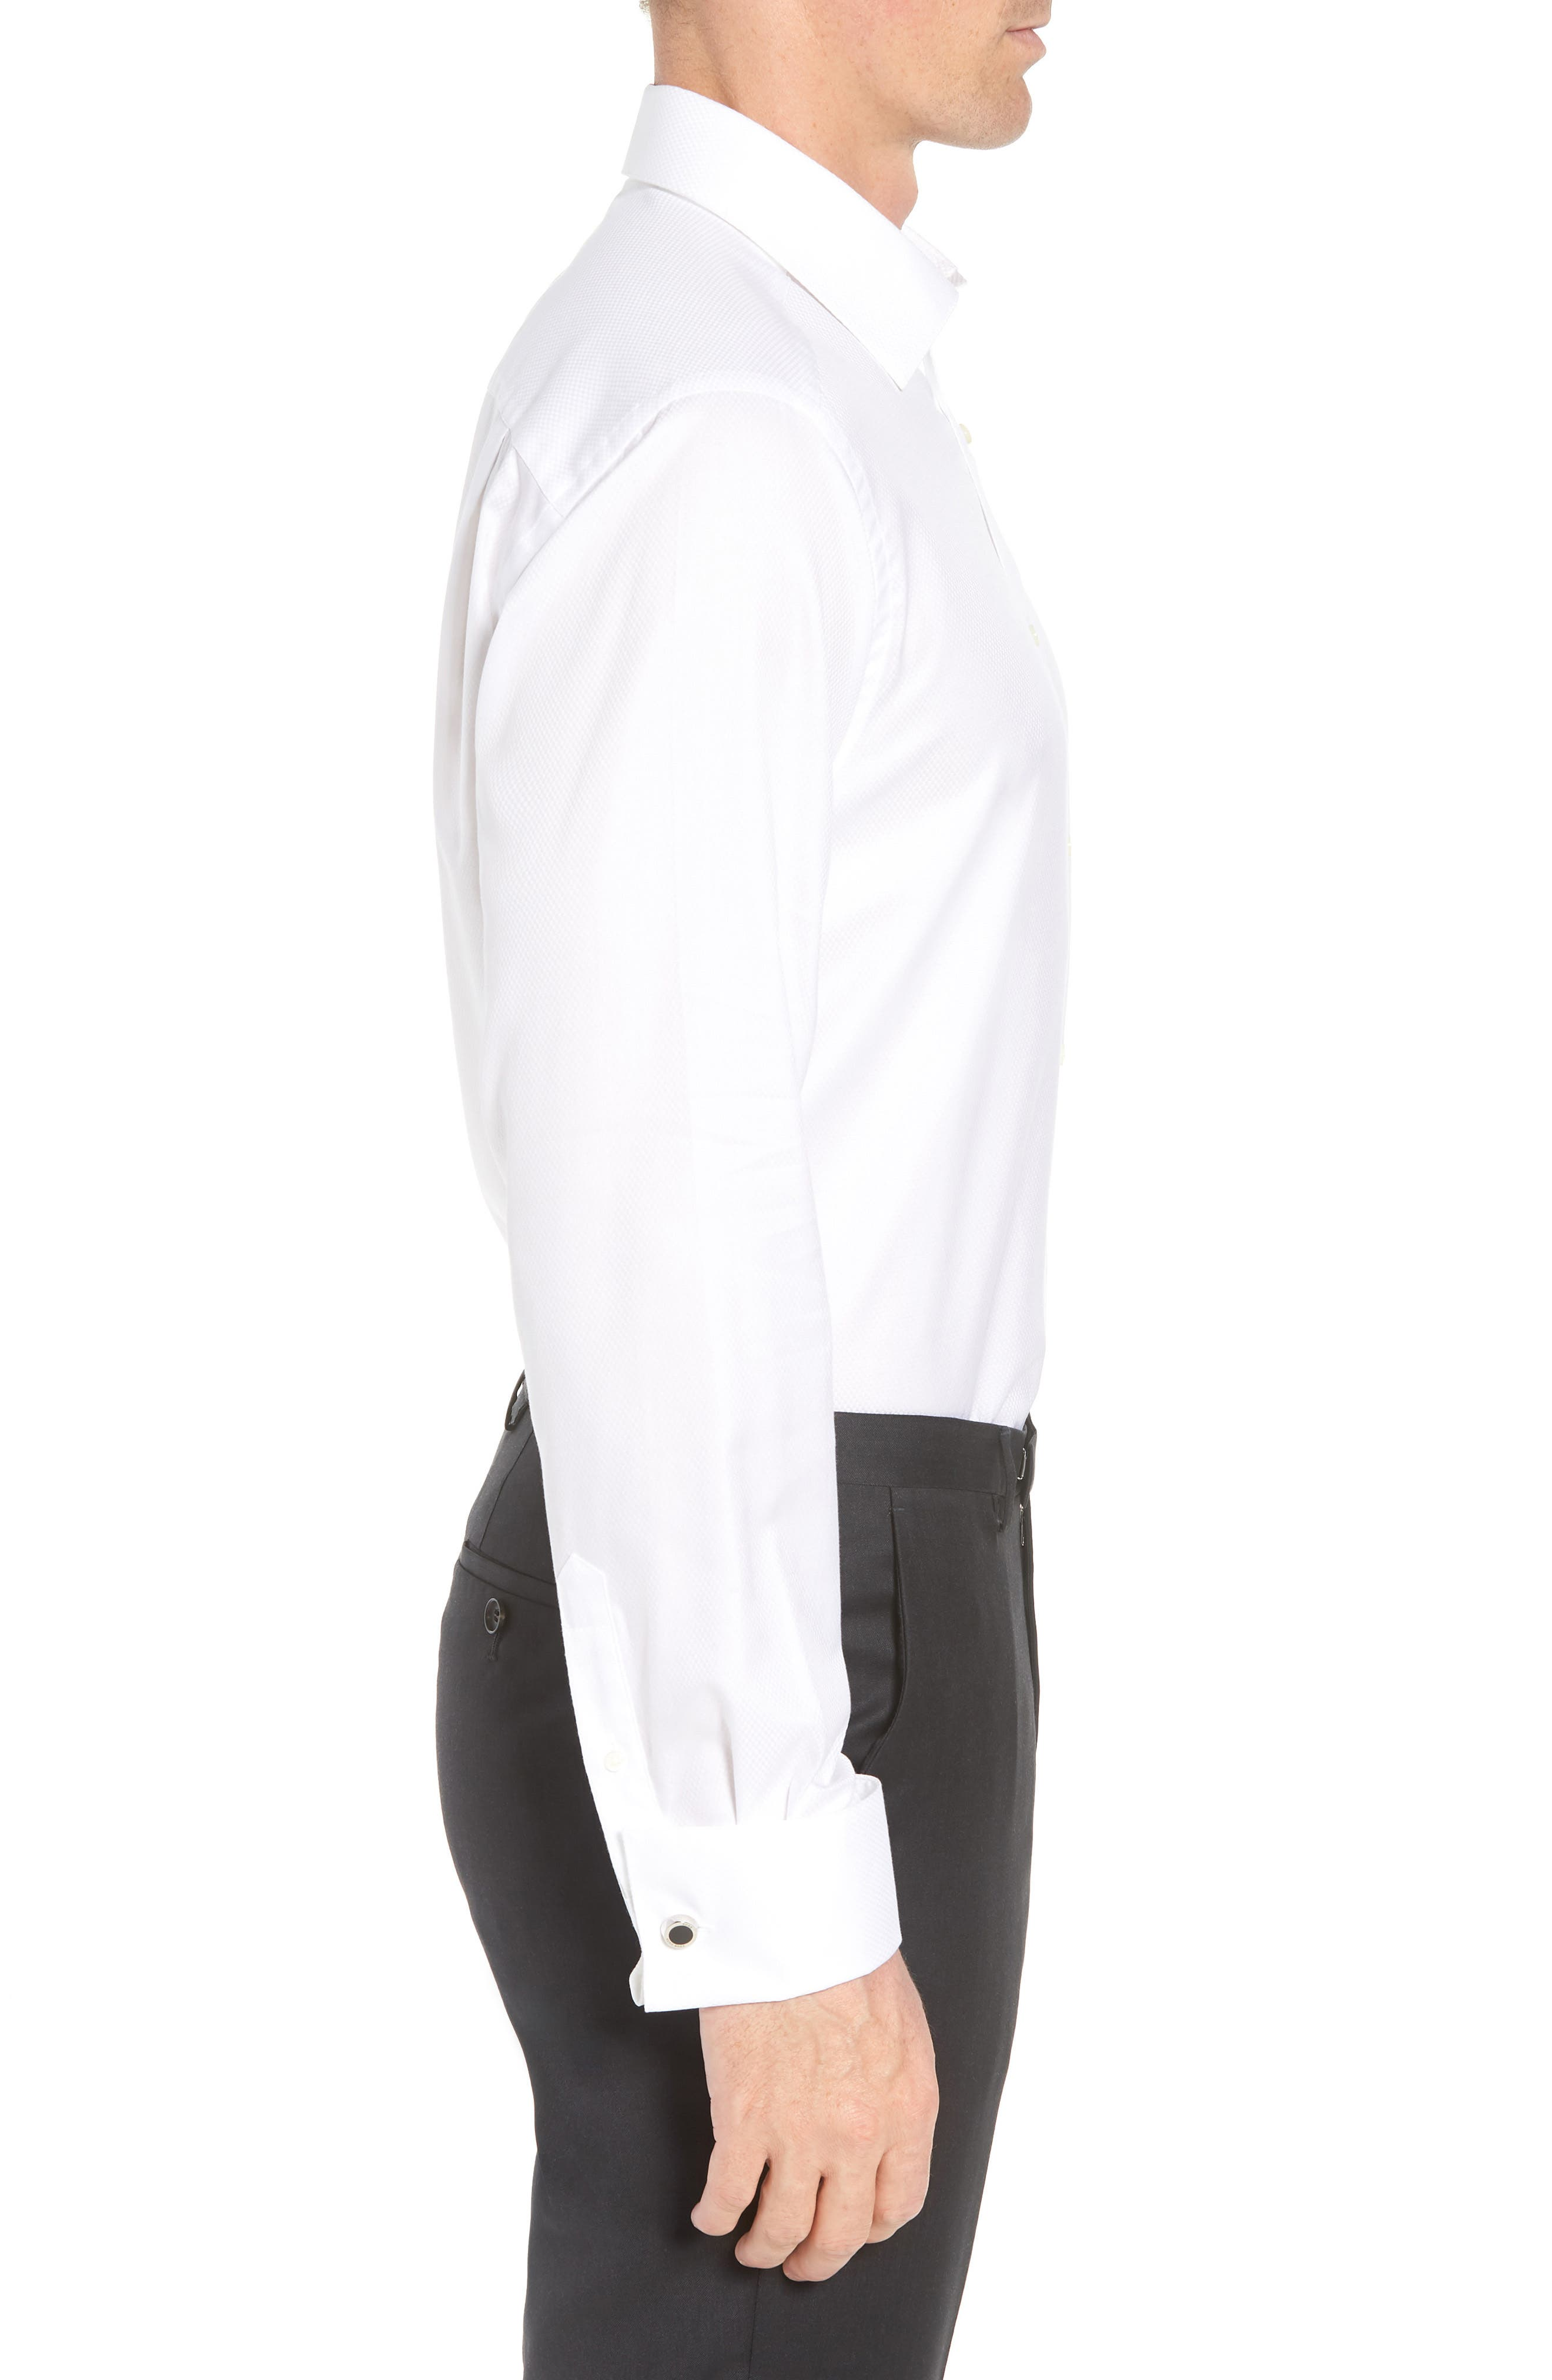 DAVID DONAHUE, Regular Fit Solid French Cuff Tuxedo Shirt, Alternate thumbnail 4, color, WHITE / WHITE